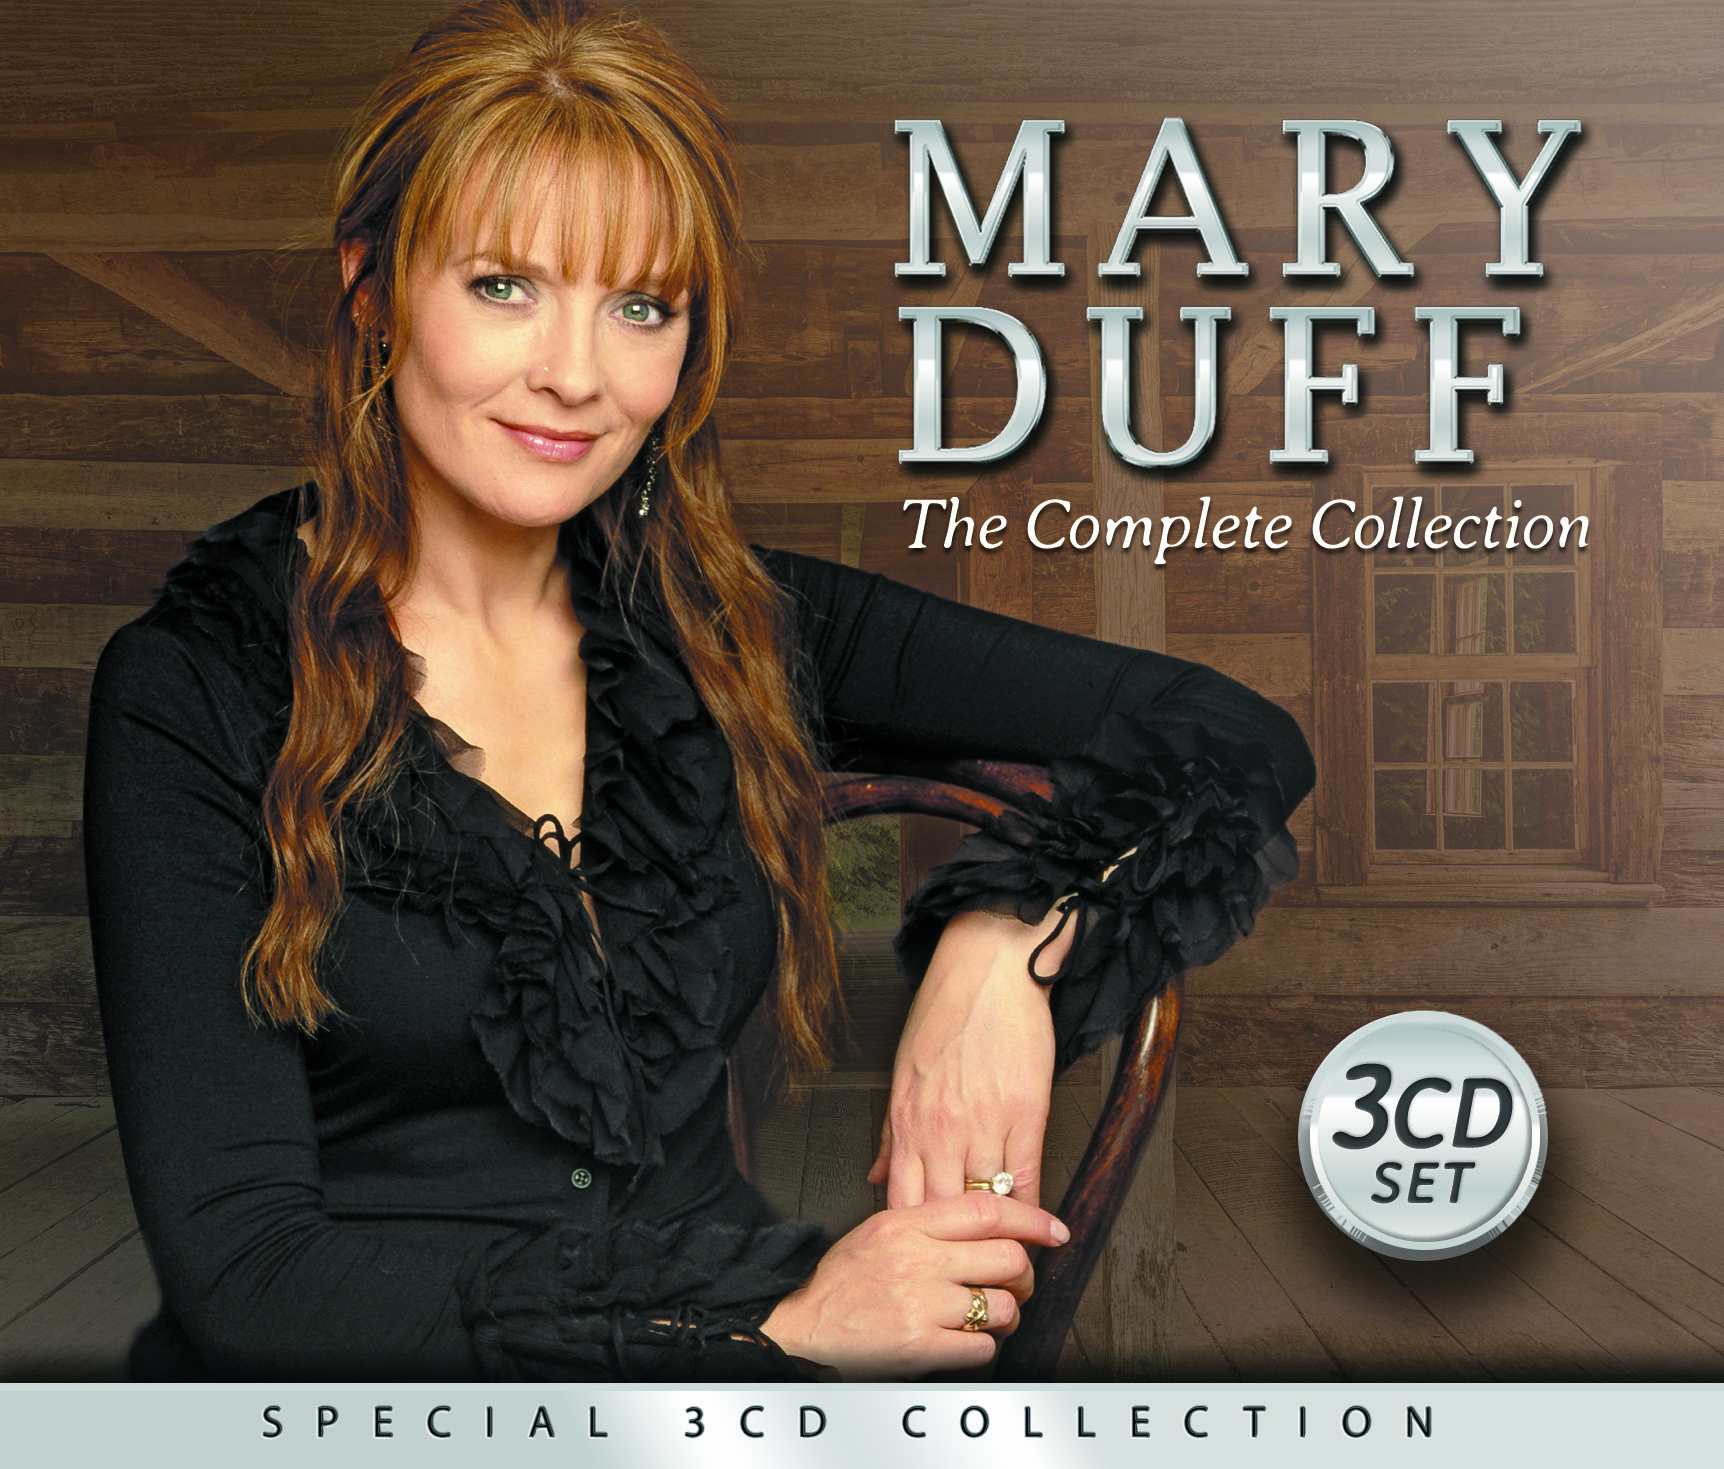 This superb collection features 57 songs from many genres and shows Marys ability to cross over from Country to Folk to Pop with ease. It is the angelic voice of Mary Duff plus the choice of material that she records that has made her such a success. The collection features such favourites as Rose Garden, 57'Chevrolet, Crazy, Stand By Your Man, Yellow Roses, Amazing Grace and many more…    Available from  www.irishcountrymusic.shop  and leading music outlets ….